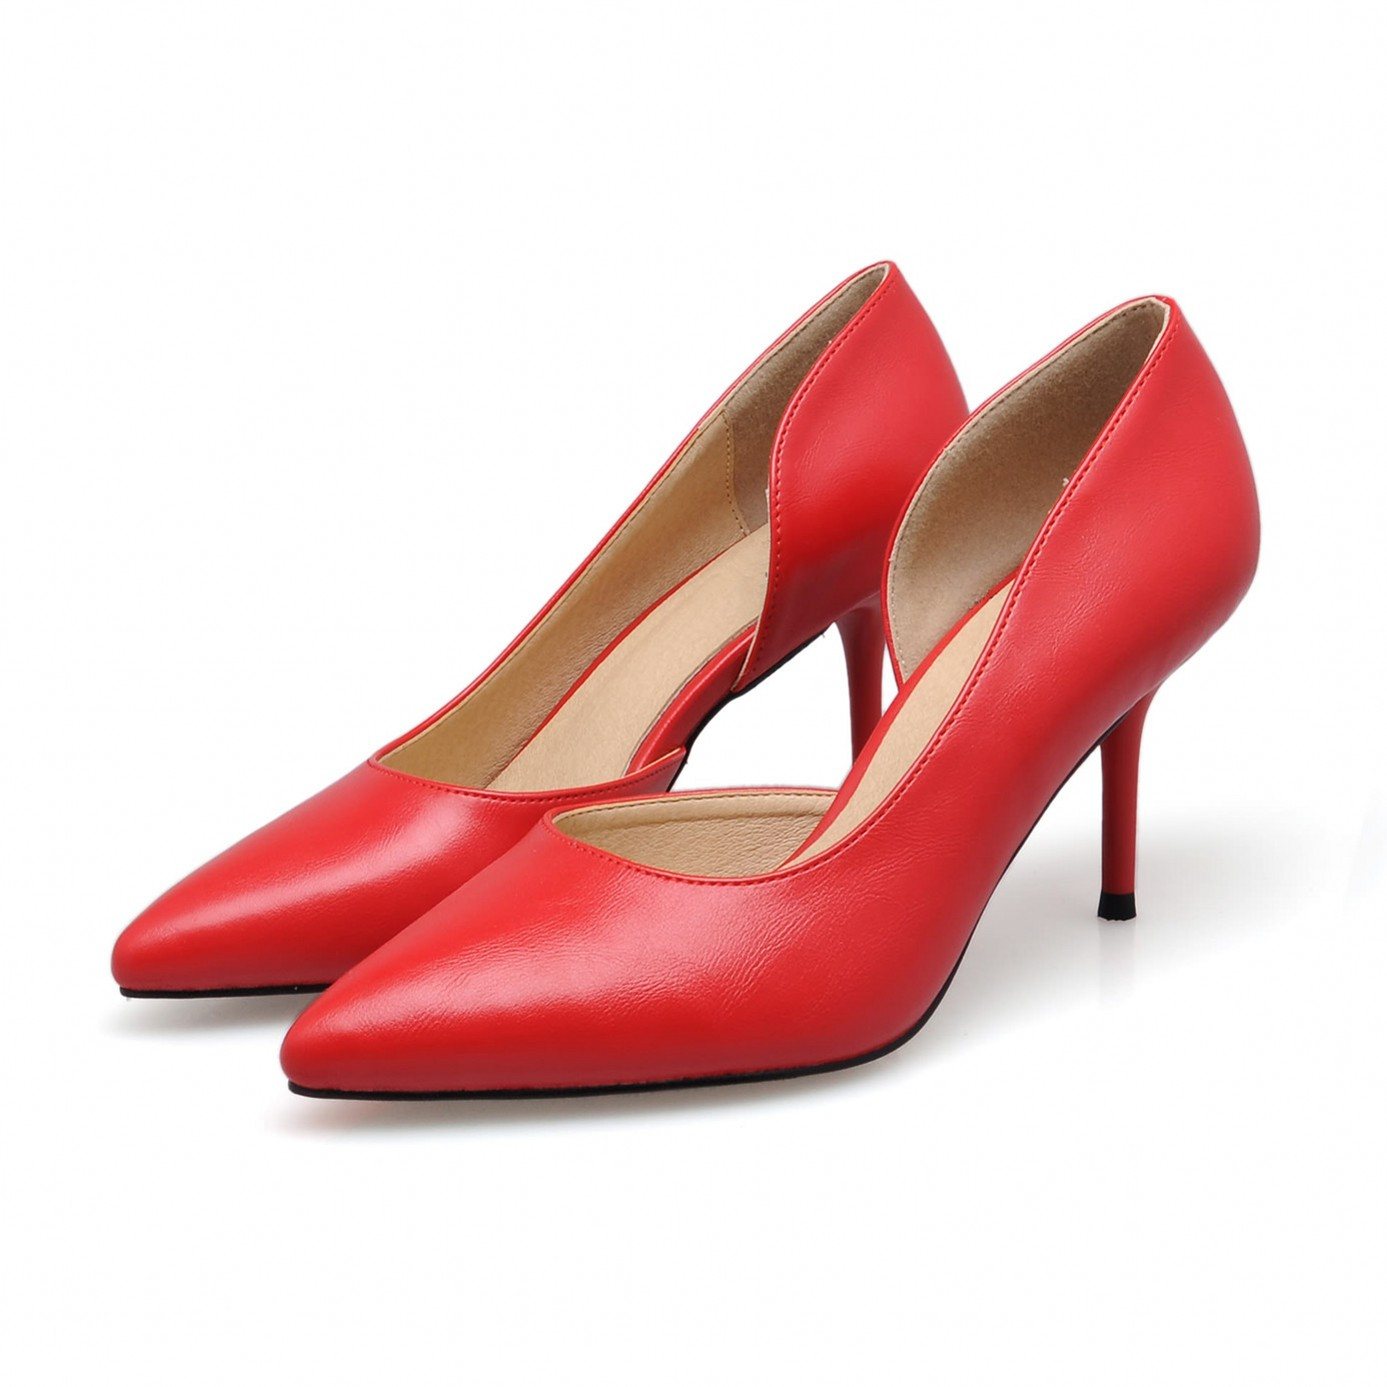 New Spring Summer Red High Heels Good Quality Pointed Toe Women Lady Solid Simple Casual Genuine Leather Pumps Shoes SMYBK-46 fashion new spring summer med high heels good quality pointed toe women lady flock leather solid simple sexy casual pumps shoes